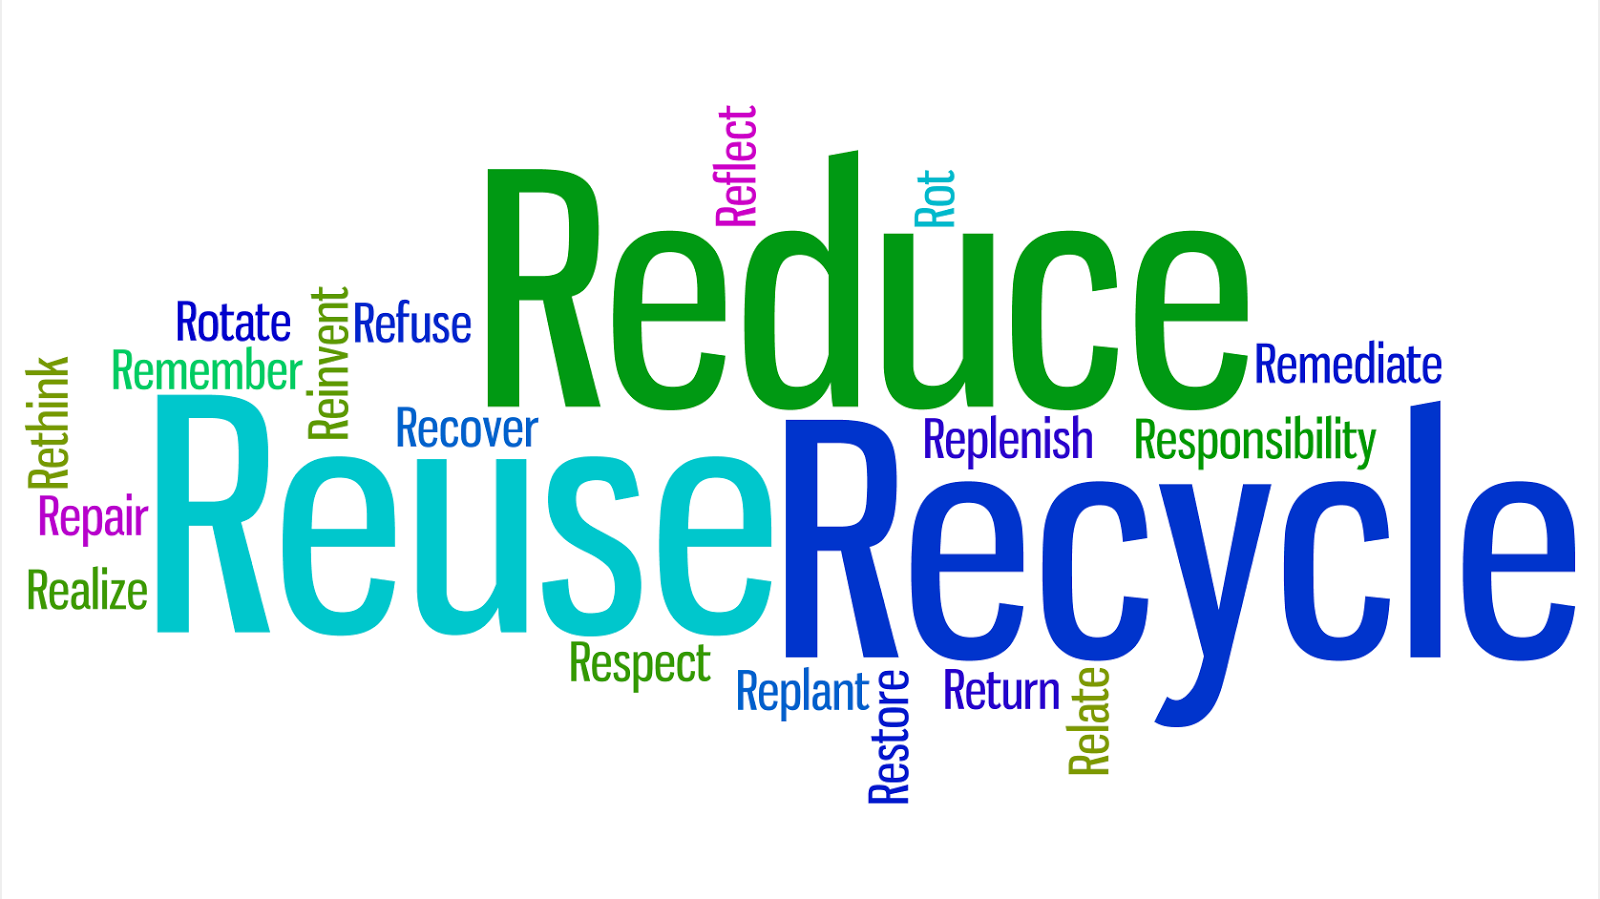 014 Rewordsreducereuserecycle Essay Example On Reduce Reuse Stirring Recycle Short In Hindi English Full